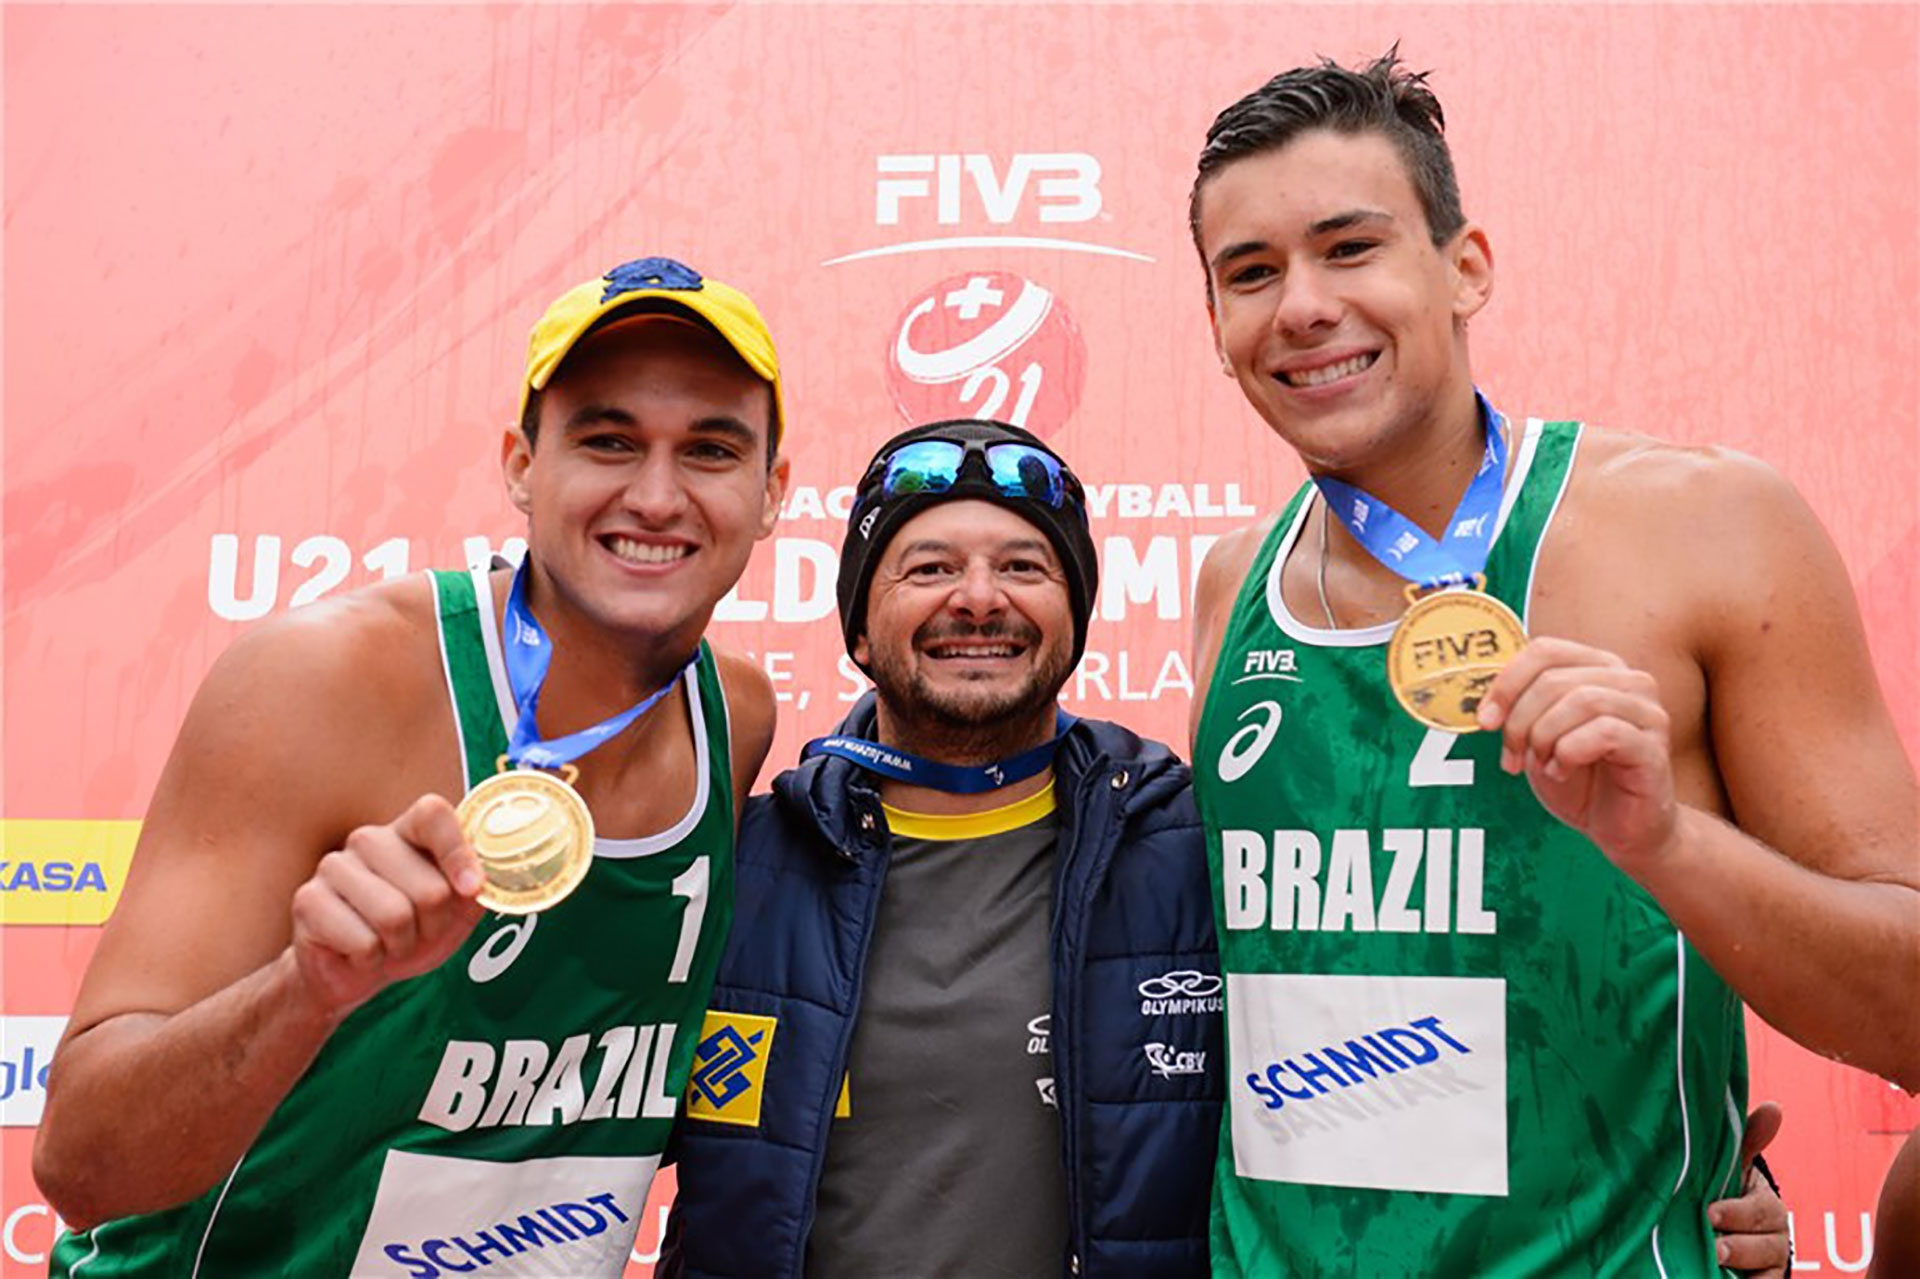 Brazil's George Souto Maior Wanderley and Arthur Diego Mariano Lanci show off their gold medals in Lucerne. Photo credit: FIVB.